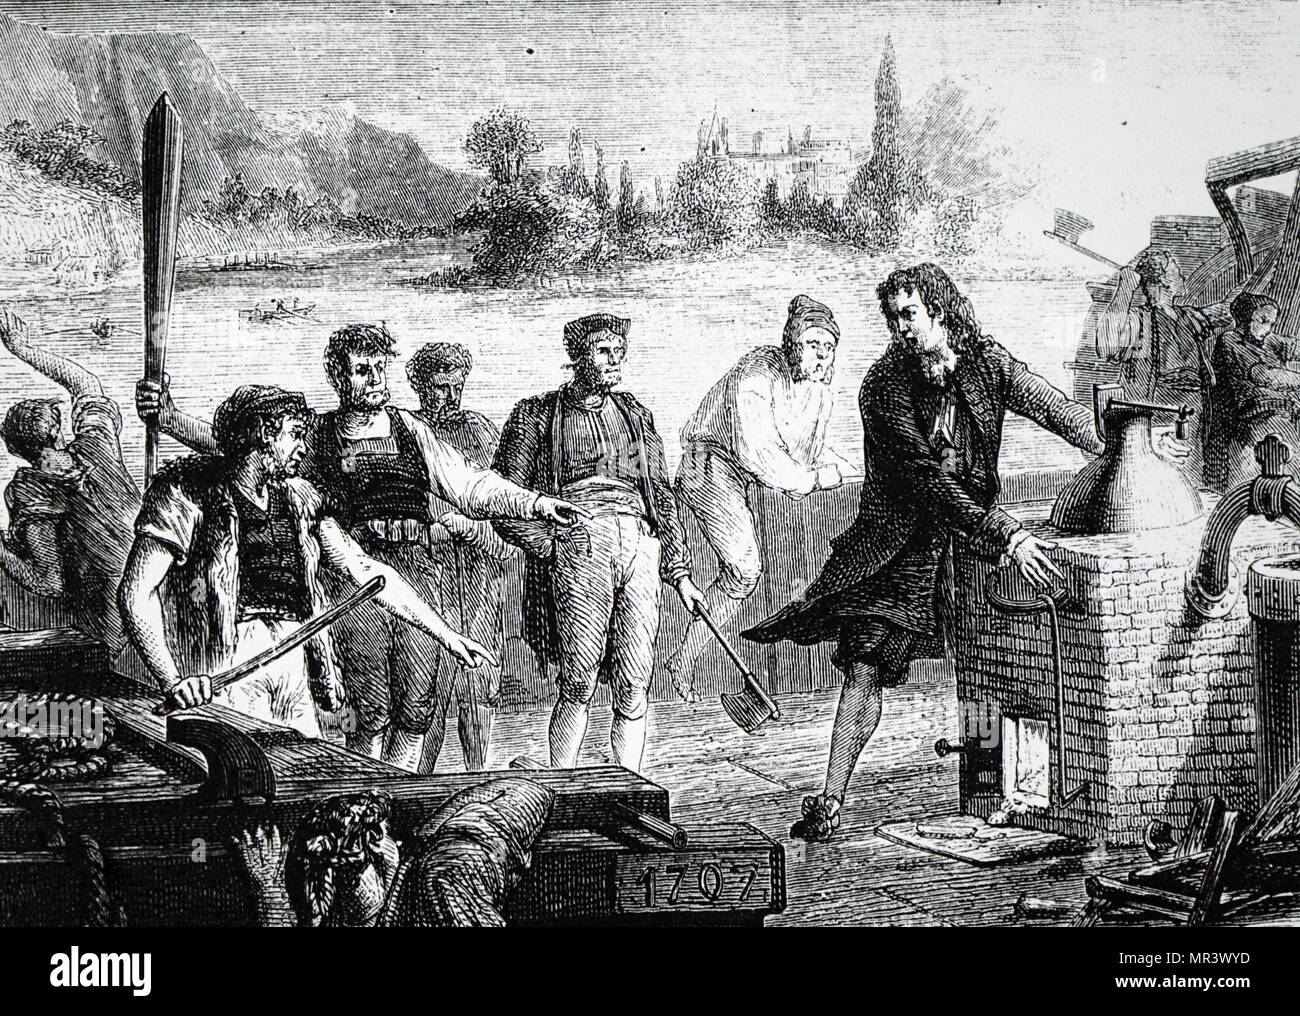 Artist's impression of the boatmen on the Weser destroying Papin's steam engine. Denis Papin (1647-1713) a French physicist, mathematician and inventor, best known for his pioneering invention of the steam digester, the forerunner of the pressure cooker and of the steam engine. Dated 18th century - Stock Image